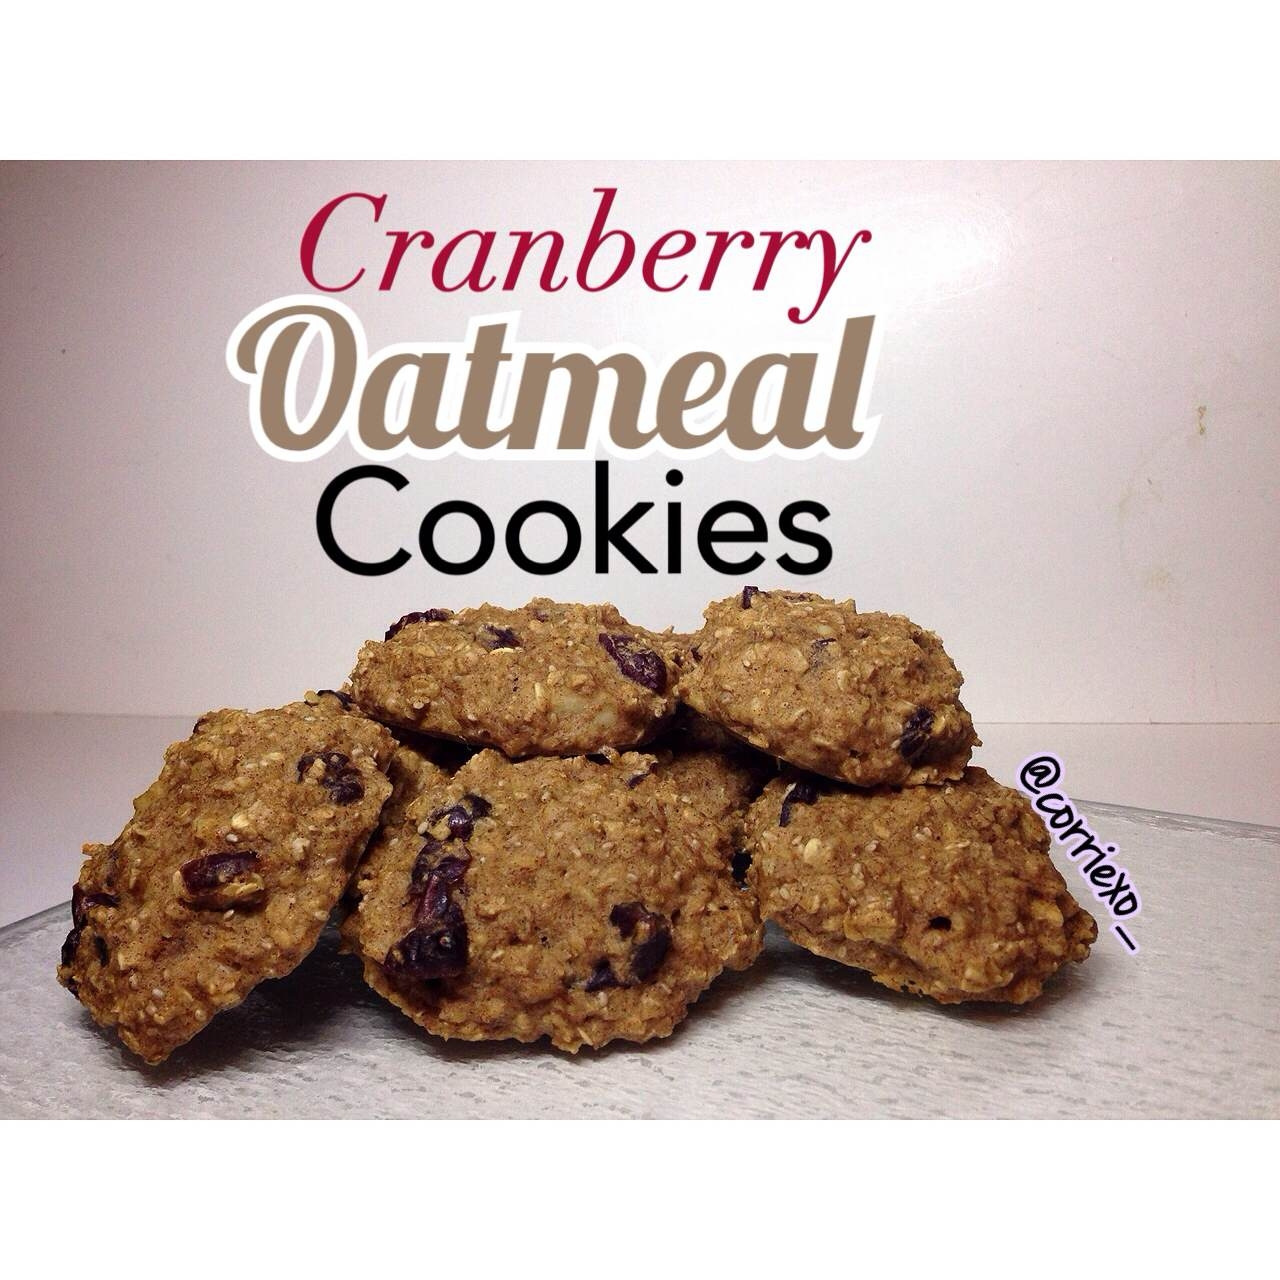 Ripped Recipes - Oatmeal Cranberry Cookies